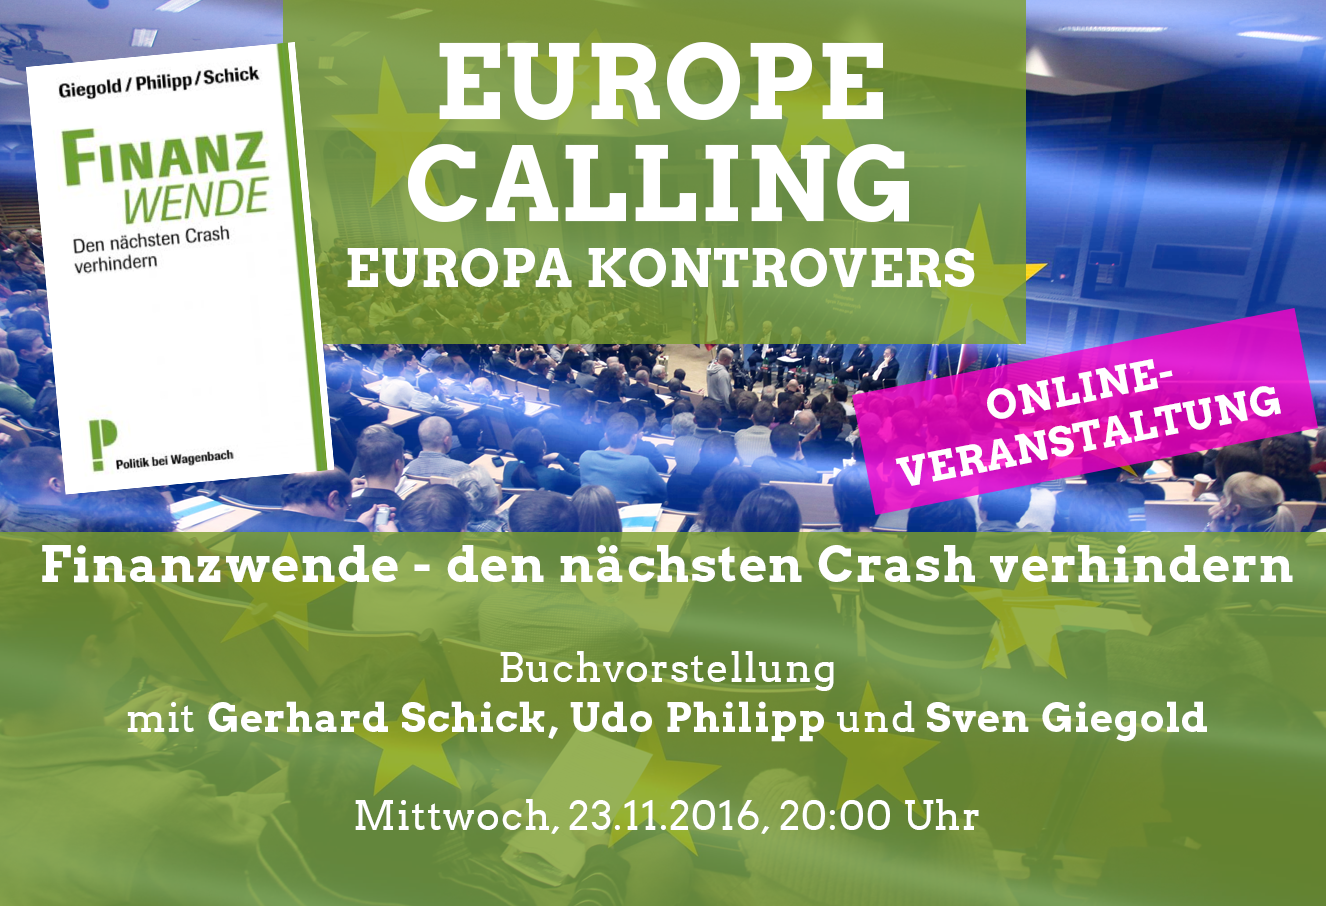 2016-11-10_europecalling_finanzwende